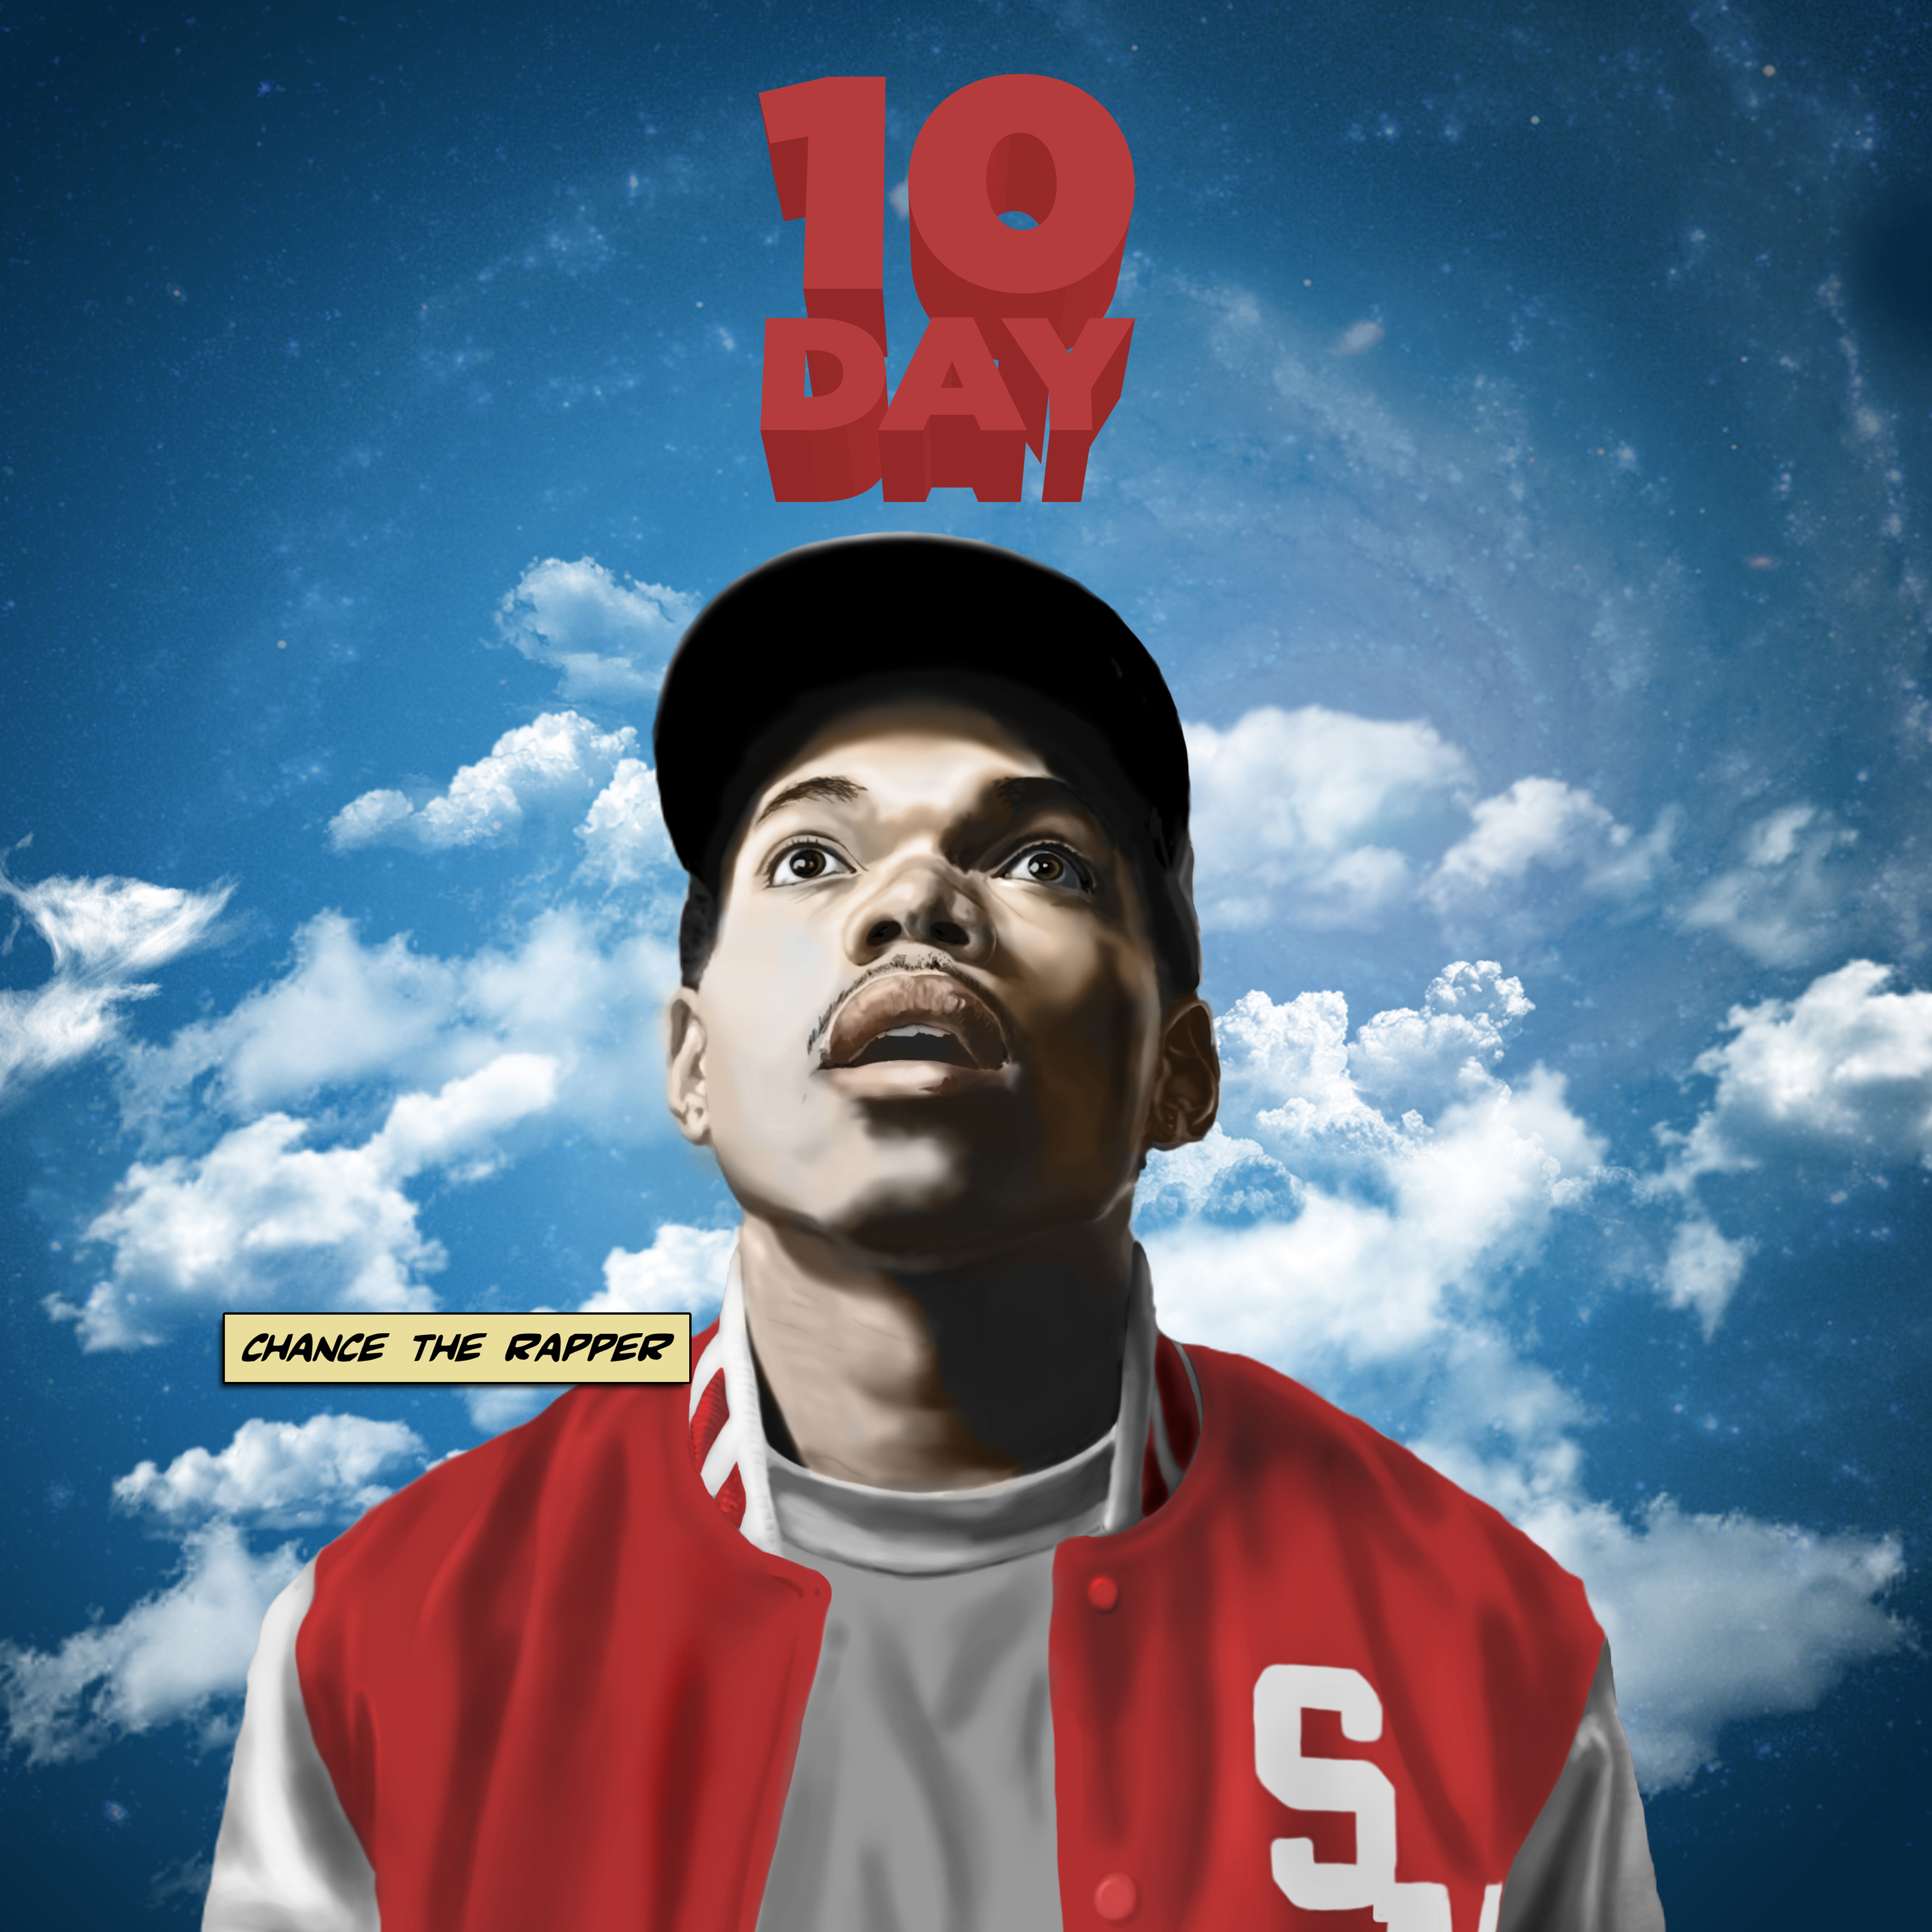 The coloring book chance the rapper download -  Review Chance The Rapper 10 Day 1337199364_10day_v2_hires Coloring Book